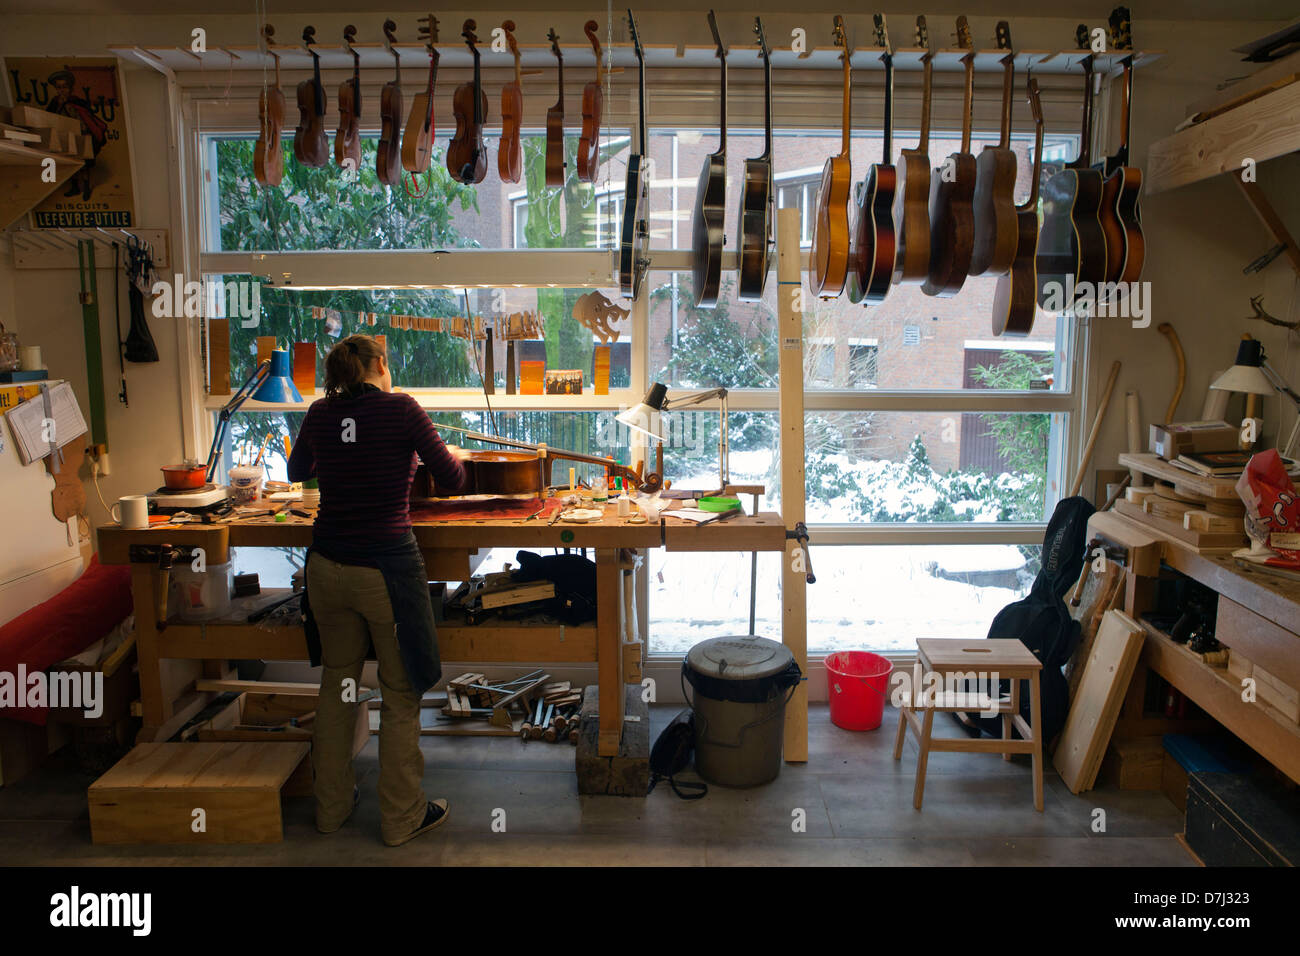 music instrument repair shop in holland stock photo 56331243 alamy. Black Bedroom Furniture Sets. Home Design Ideas